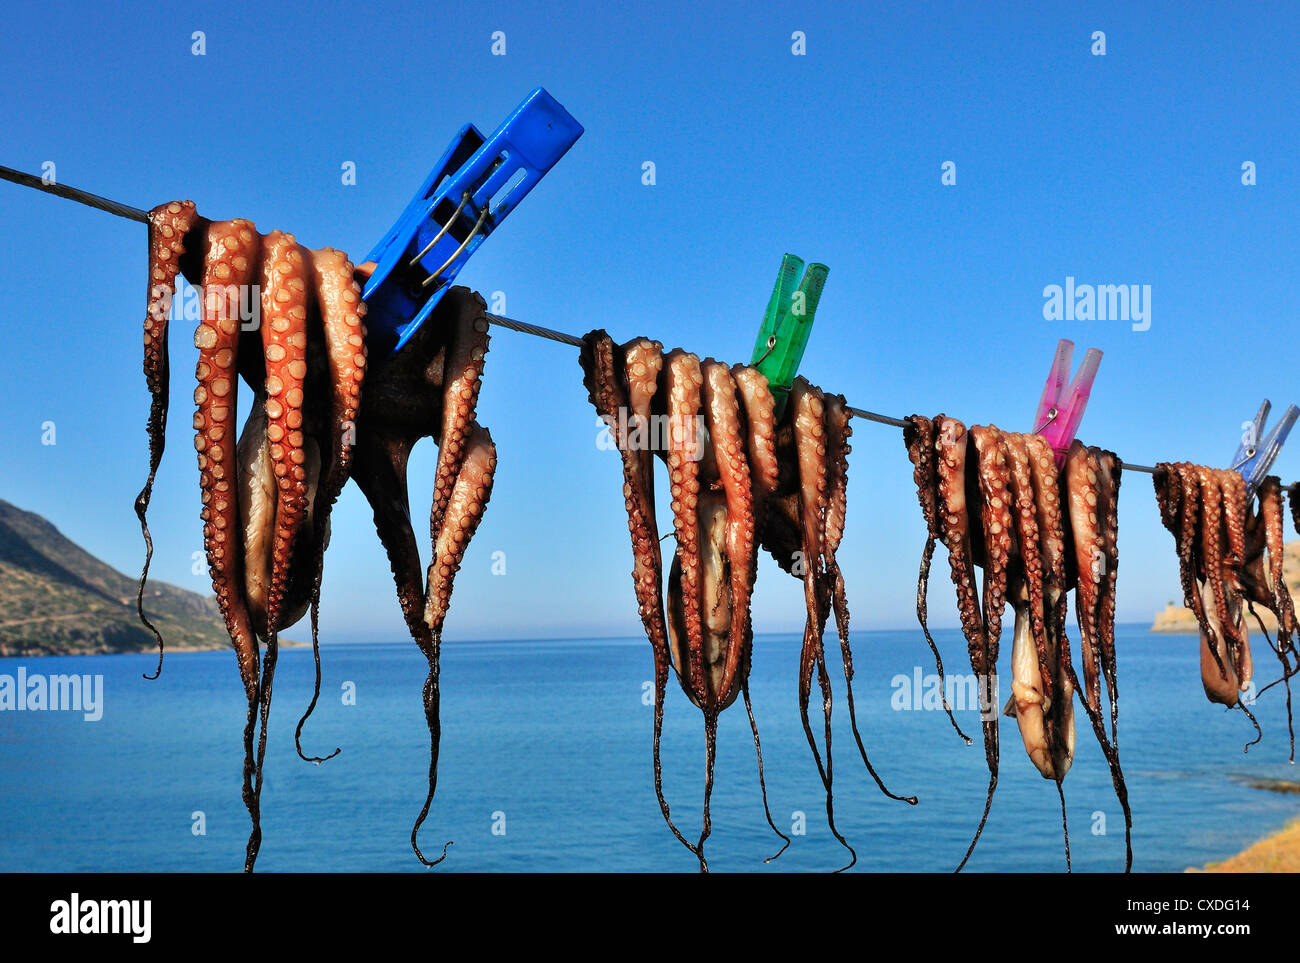 Freshly caught calamari or squid pegged out and drying on a line in the sun  outside a taverna in Plaka Nr Elounda, - Stock Image